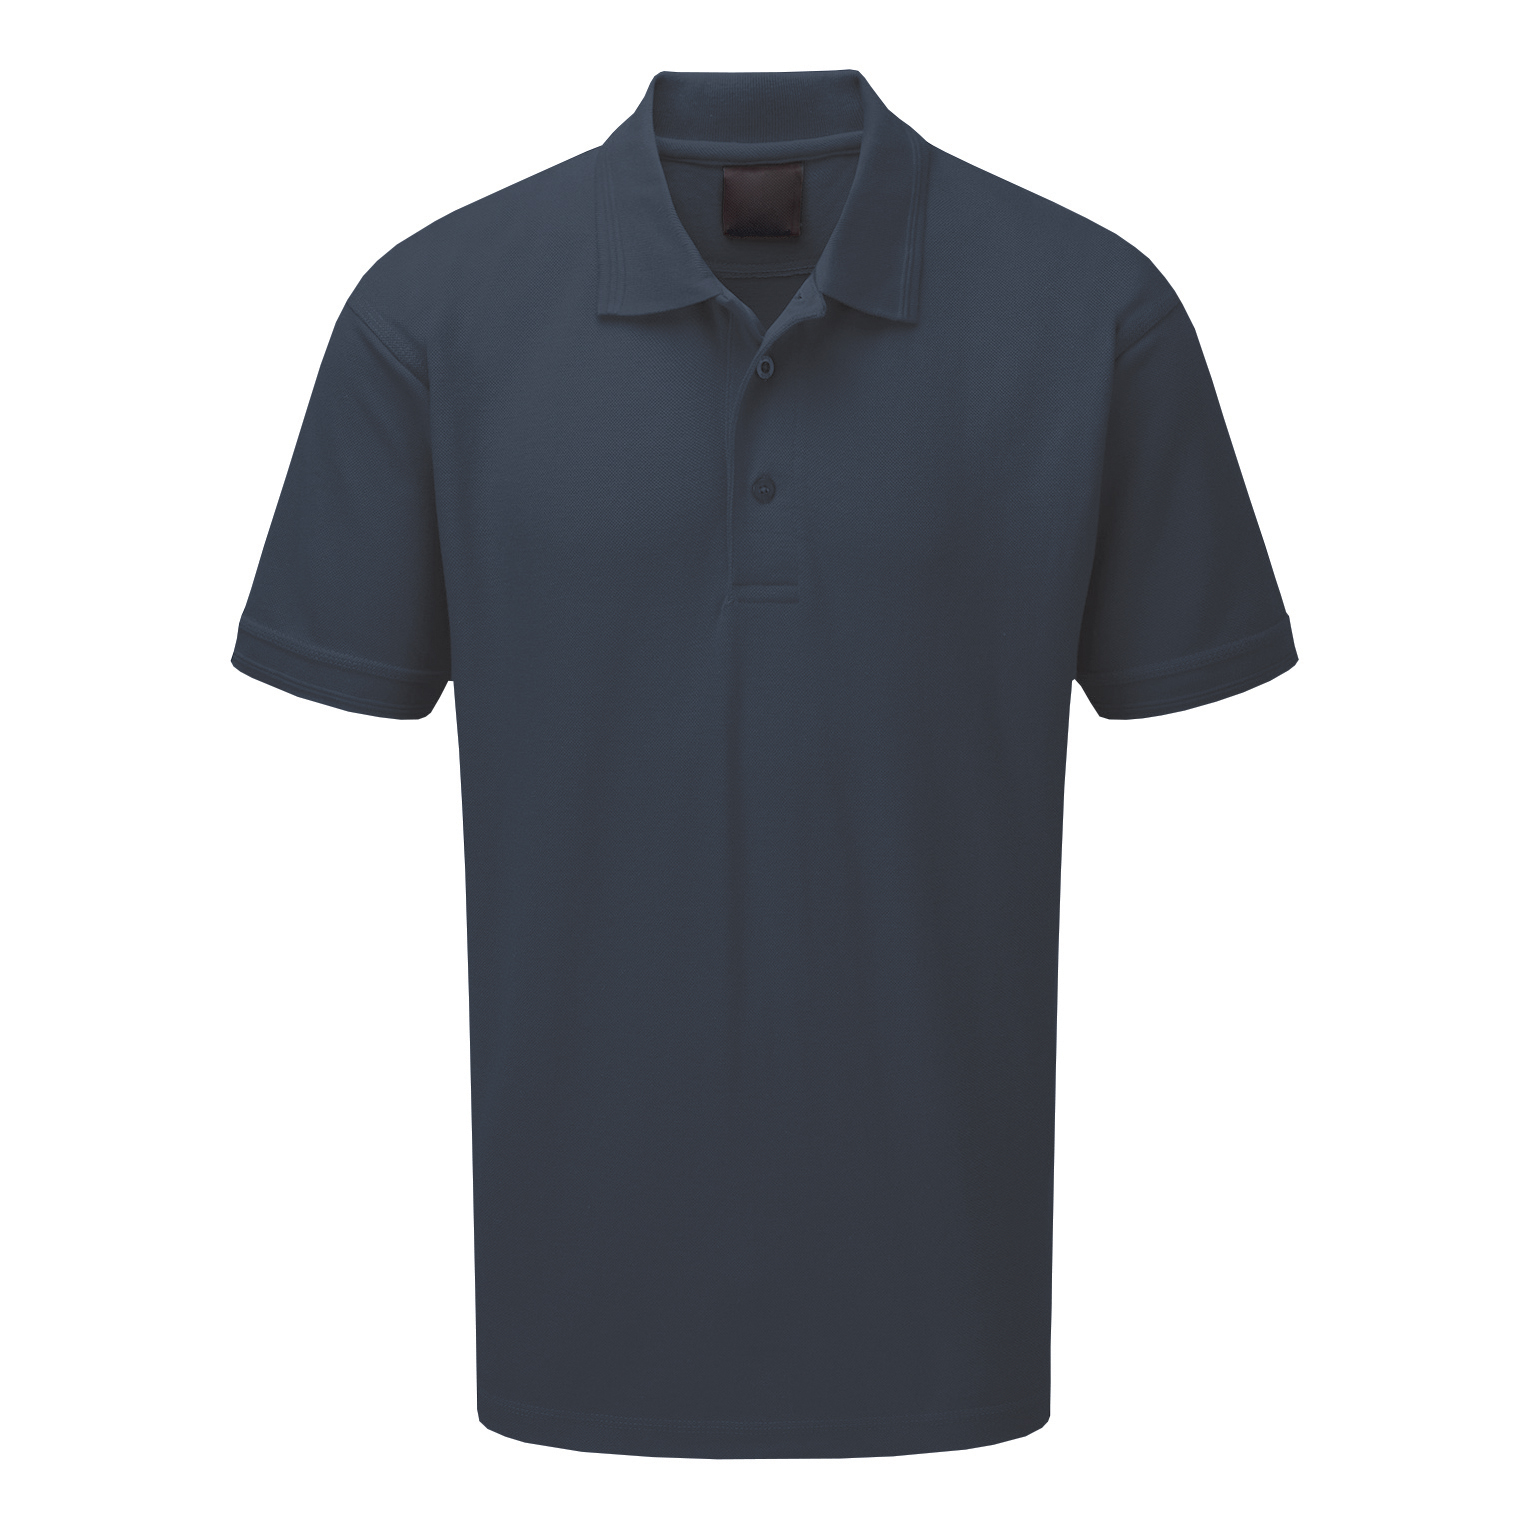 Premium Polo Triple Stitched Size 5XL Graphite *Approx 3 Day Leadtime*